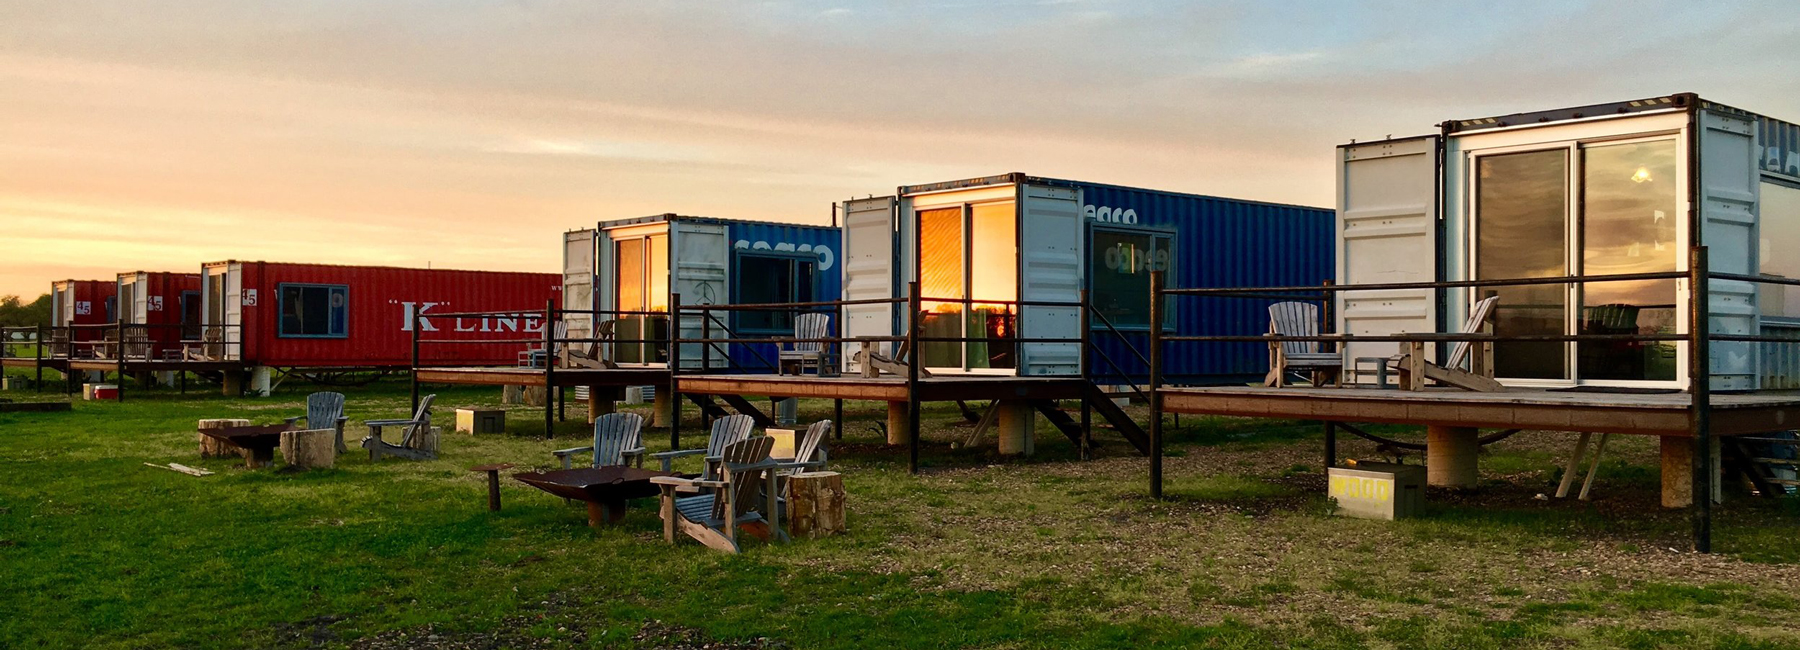 Best Kitchen Gallery: Shipping Container Architecture And Interior Design News And Projects of Ship Container Home  on rachelxblog.com